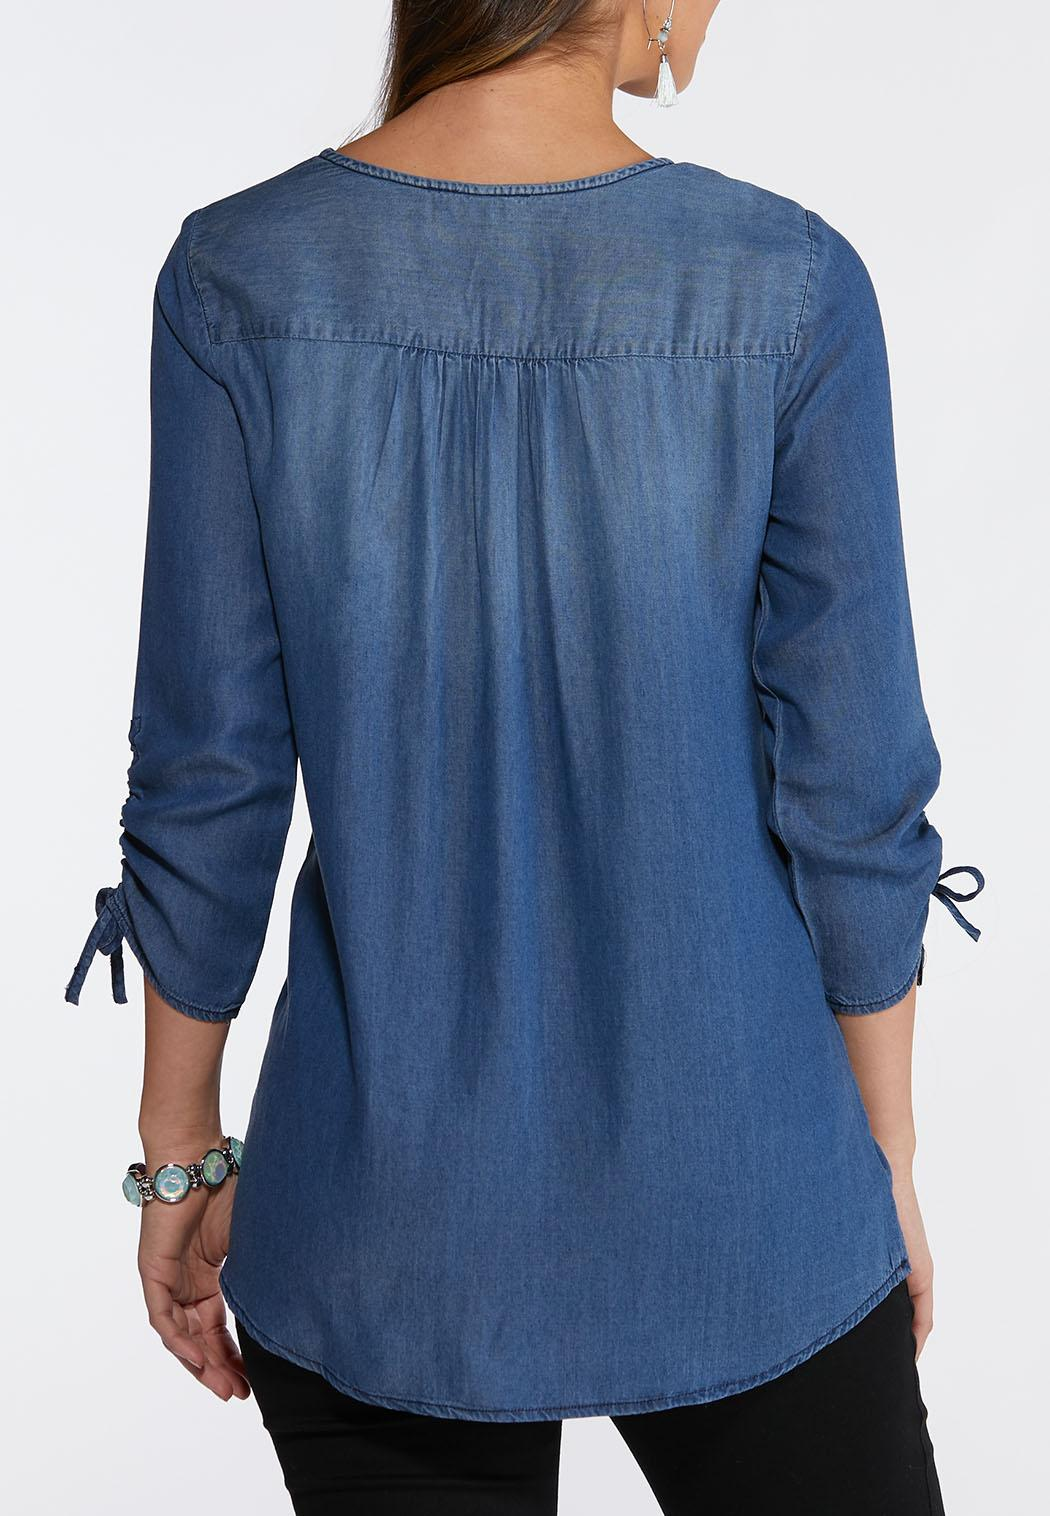 Chambray Ruched Sleeve Top (Item #43749057)